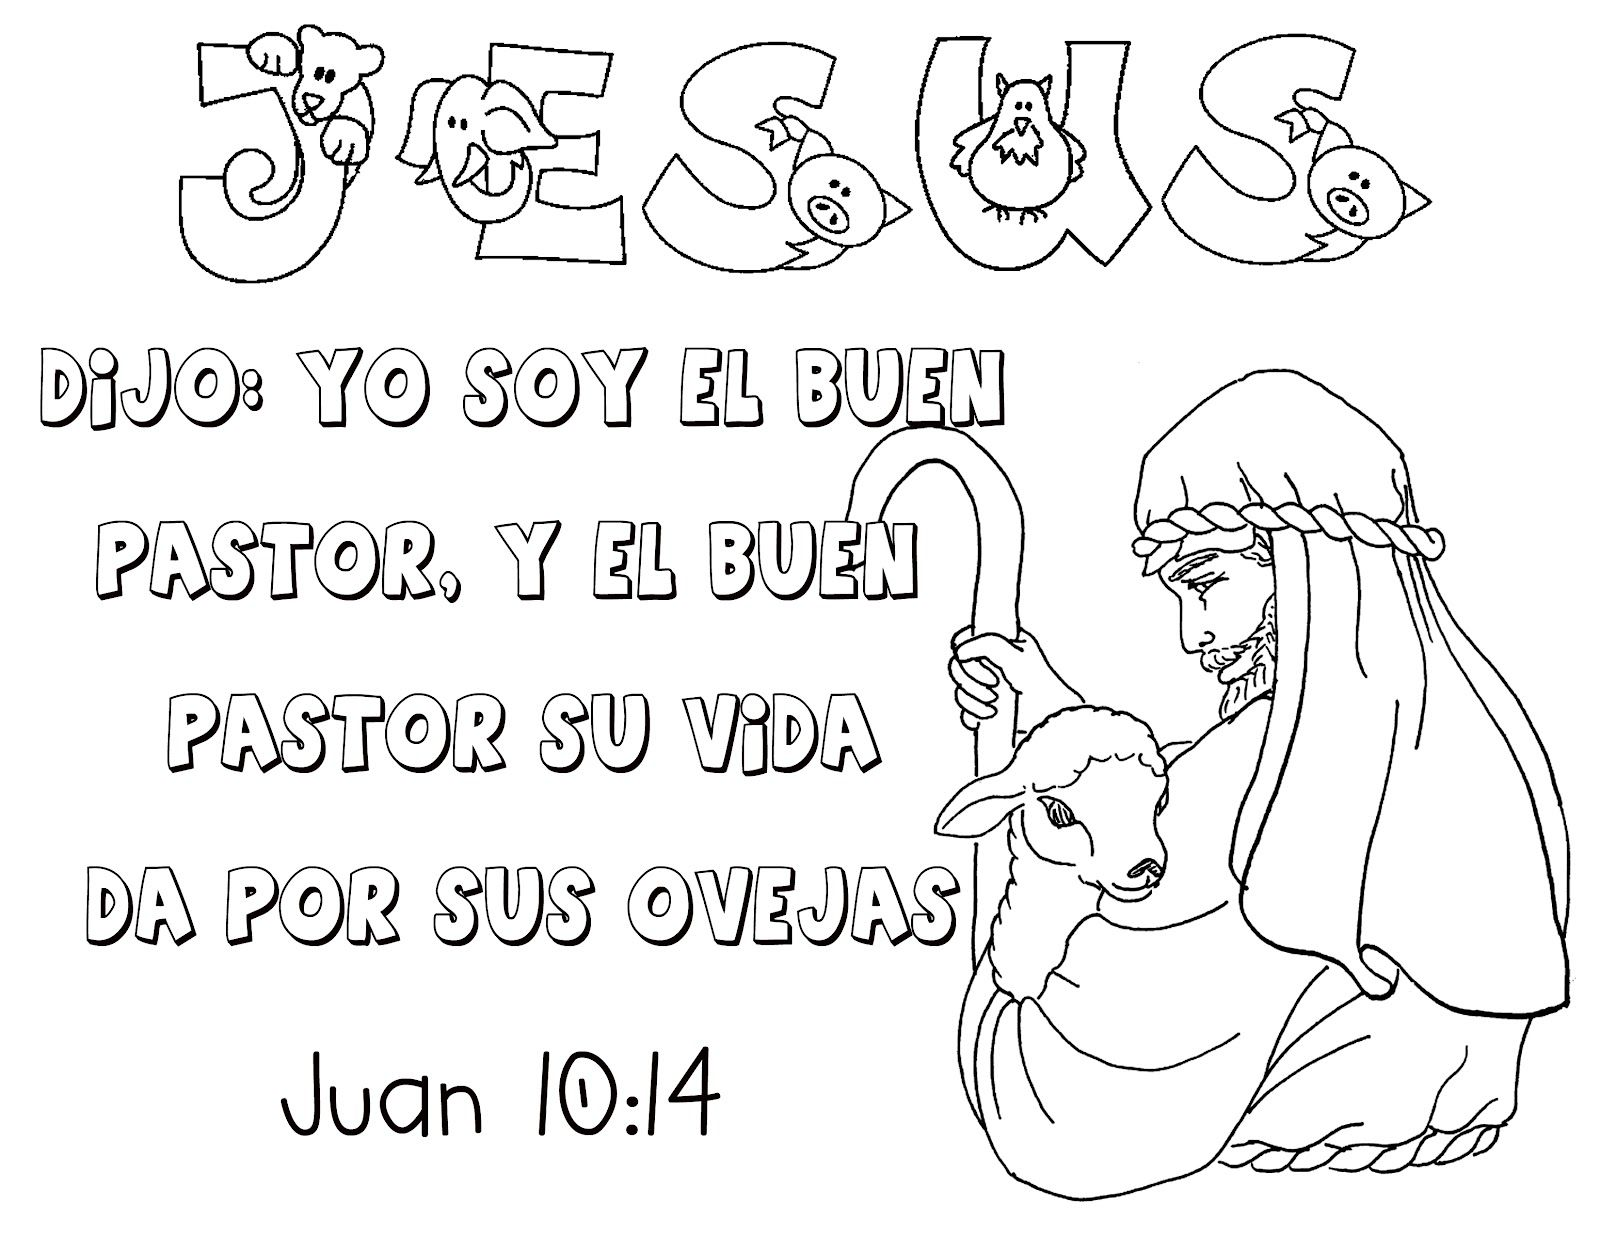 paginas para colorear cristianas de amor - Google Search ...